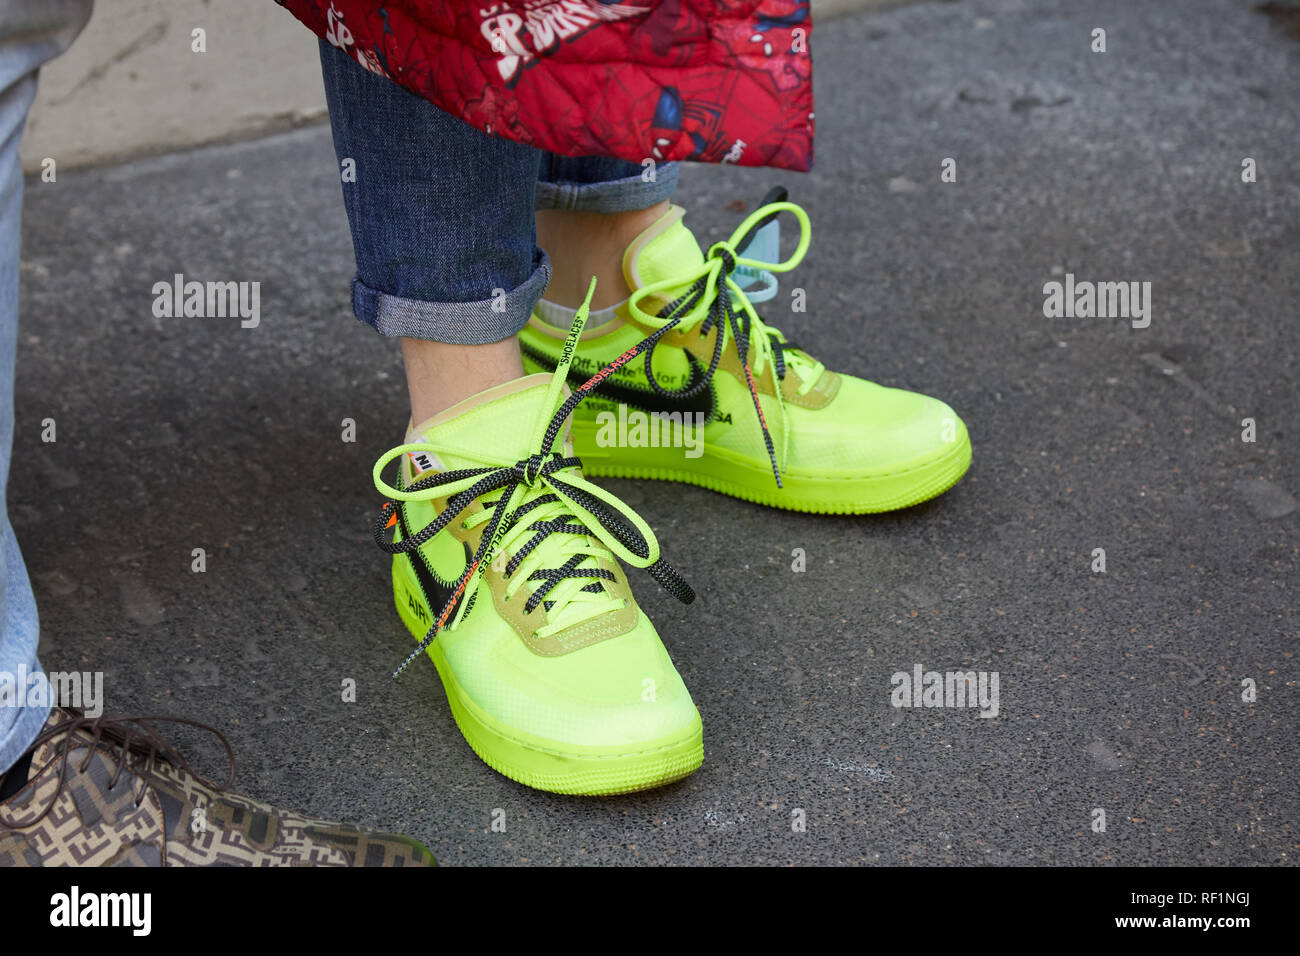 info for 06c1a 68e51 MILAN, ITALY - JANUARY 13, 2019: Woman with yellow Nike Air ...